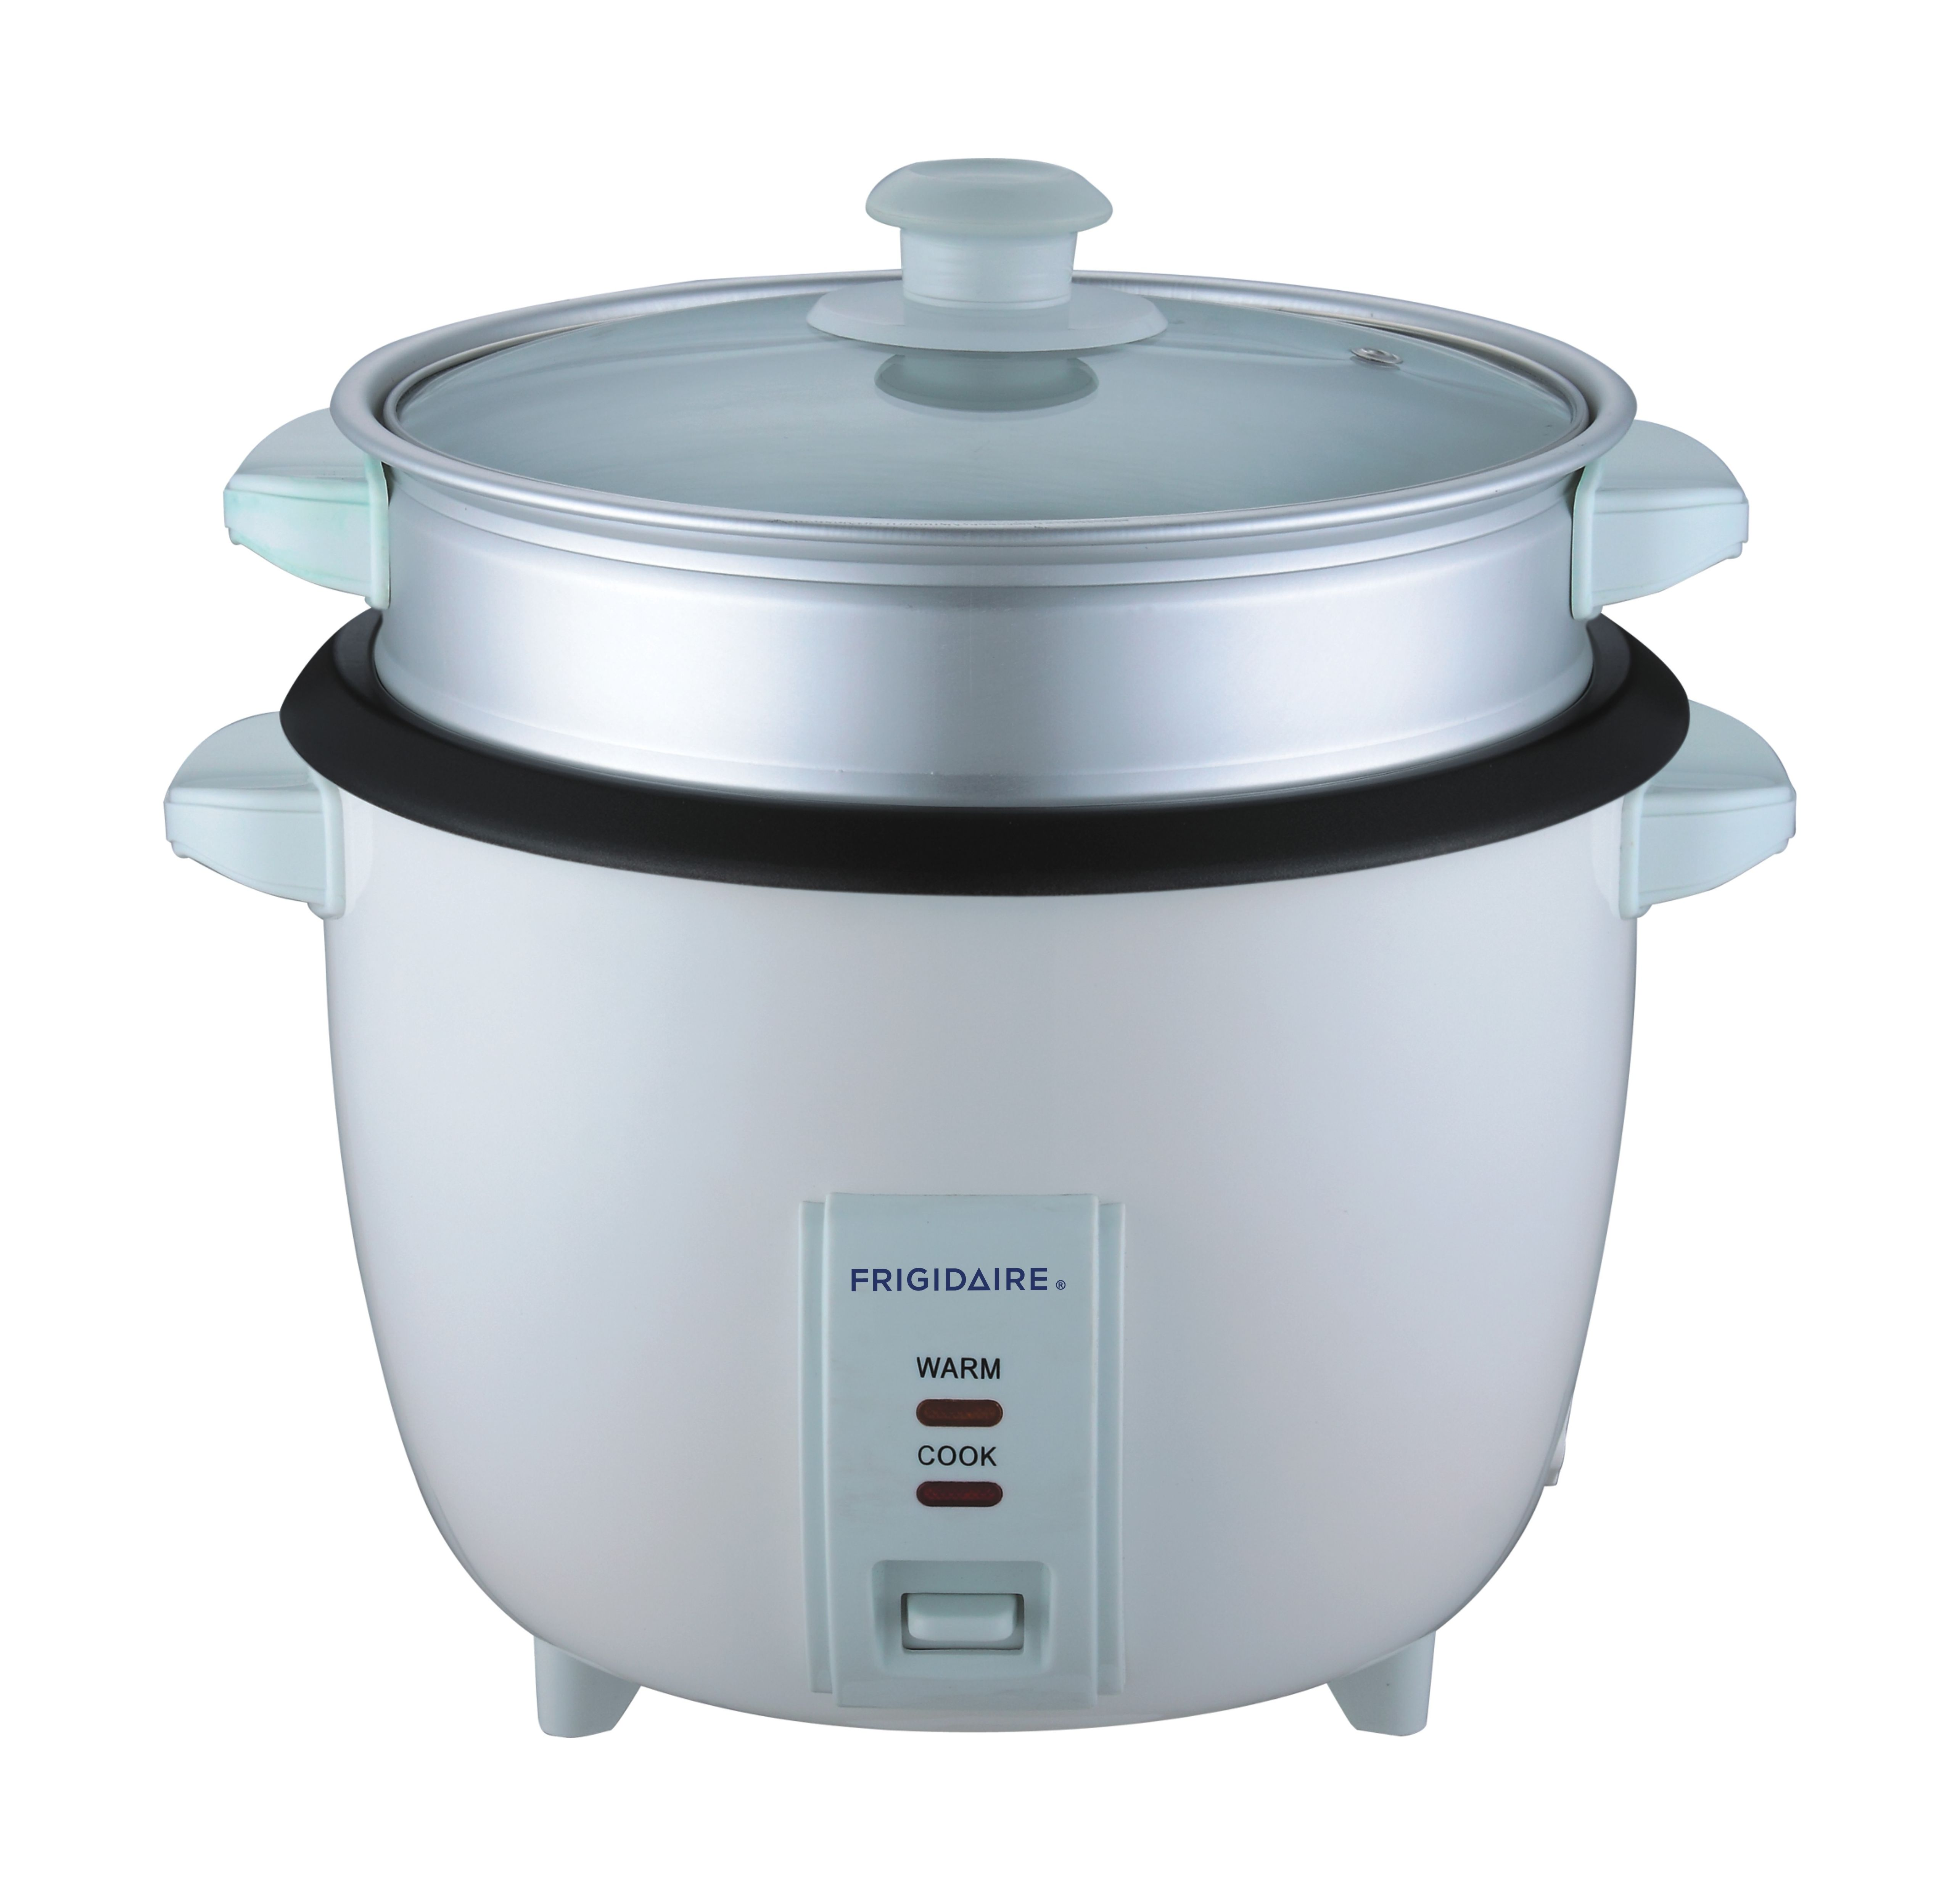 Frigidaire Rice Cooker With Steamer 1000W 2.8 Litres - White ...